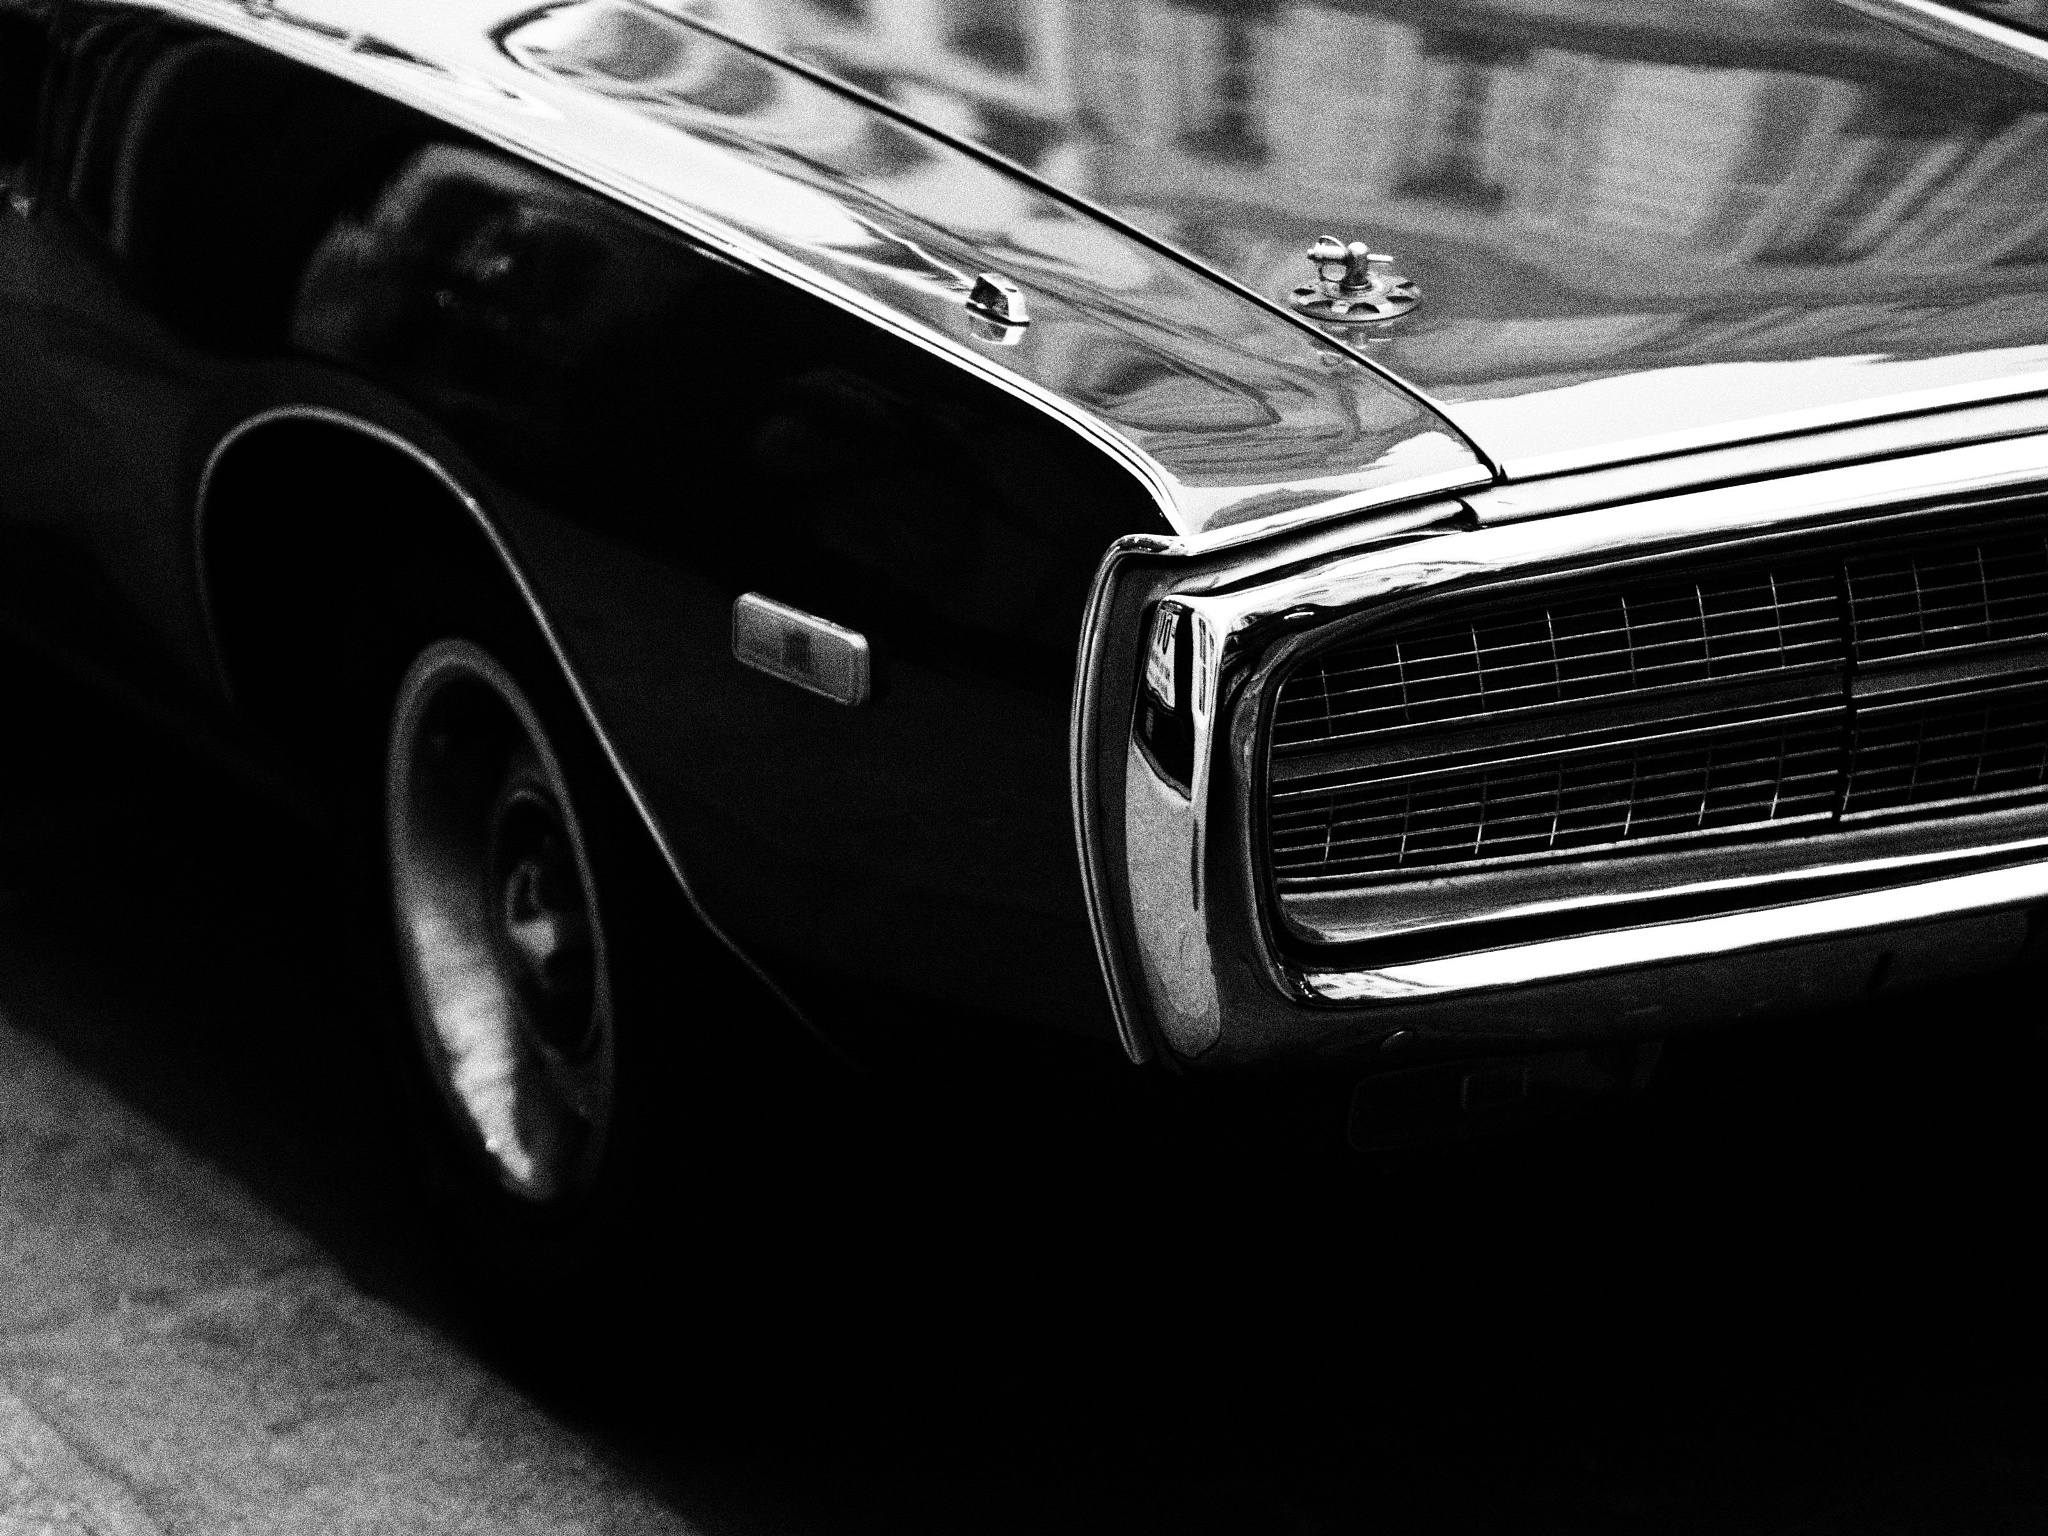 Old car by Jean-Luc Manh